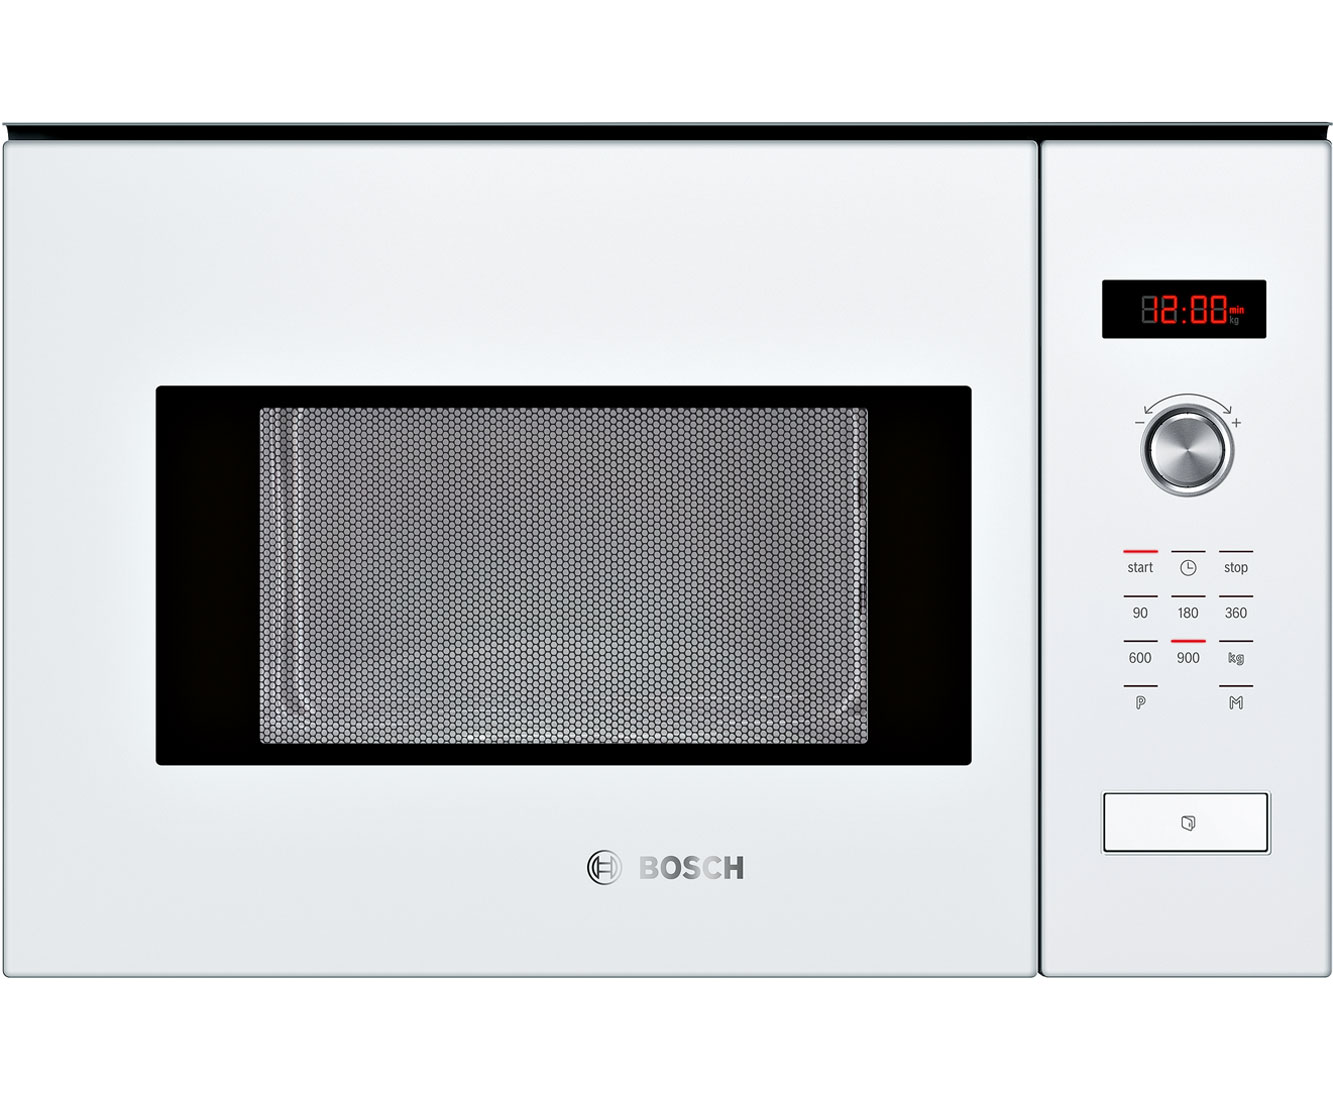 Integrated Microwave Buy Cheap Bosch Integrated Microwave Oven Compare